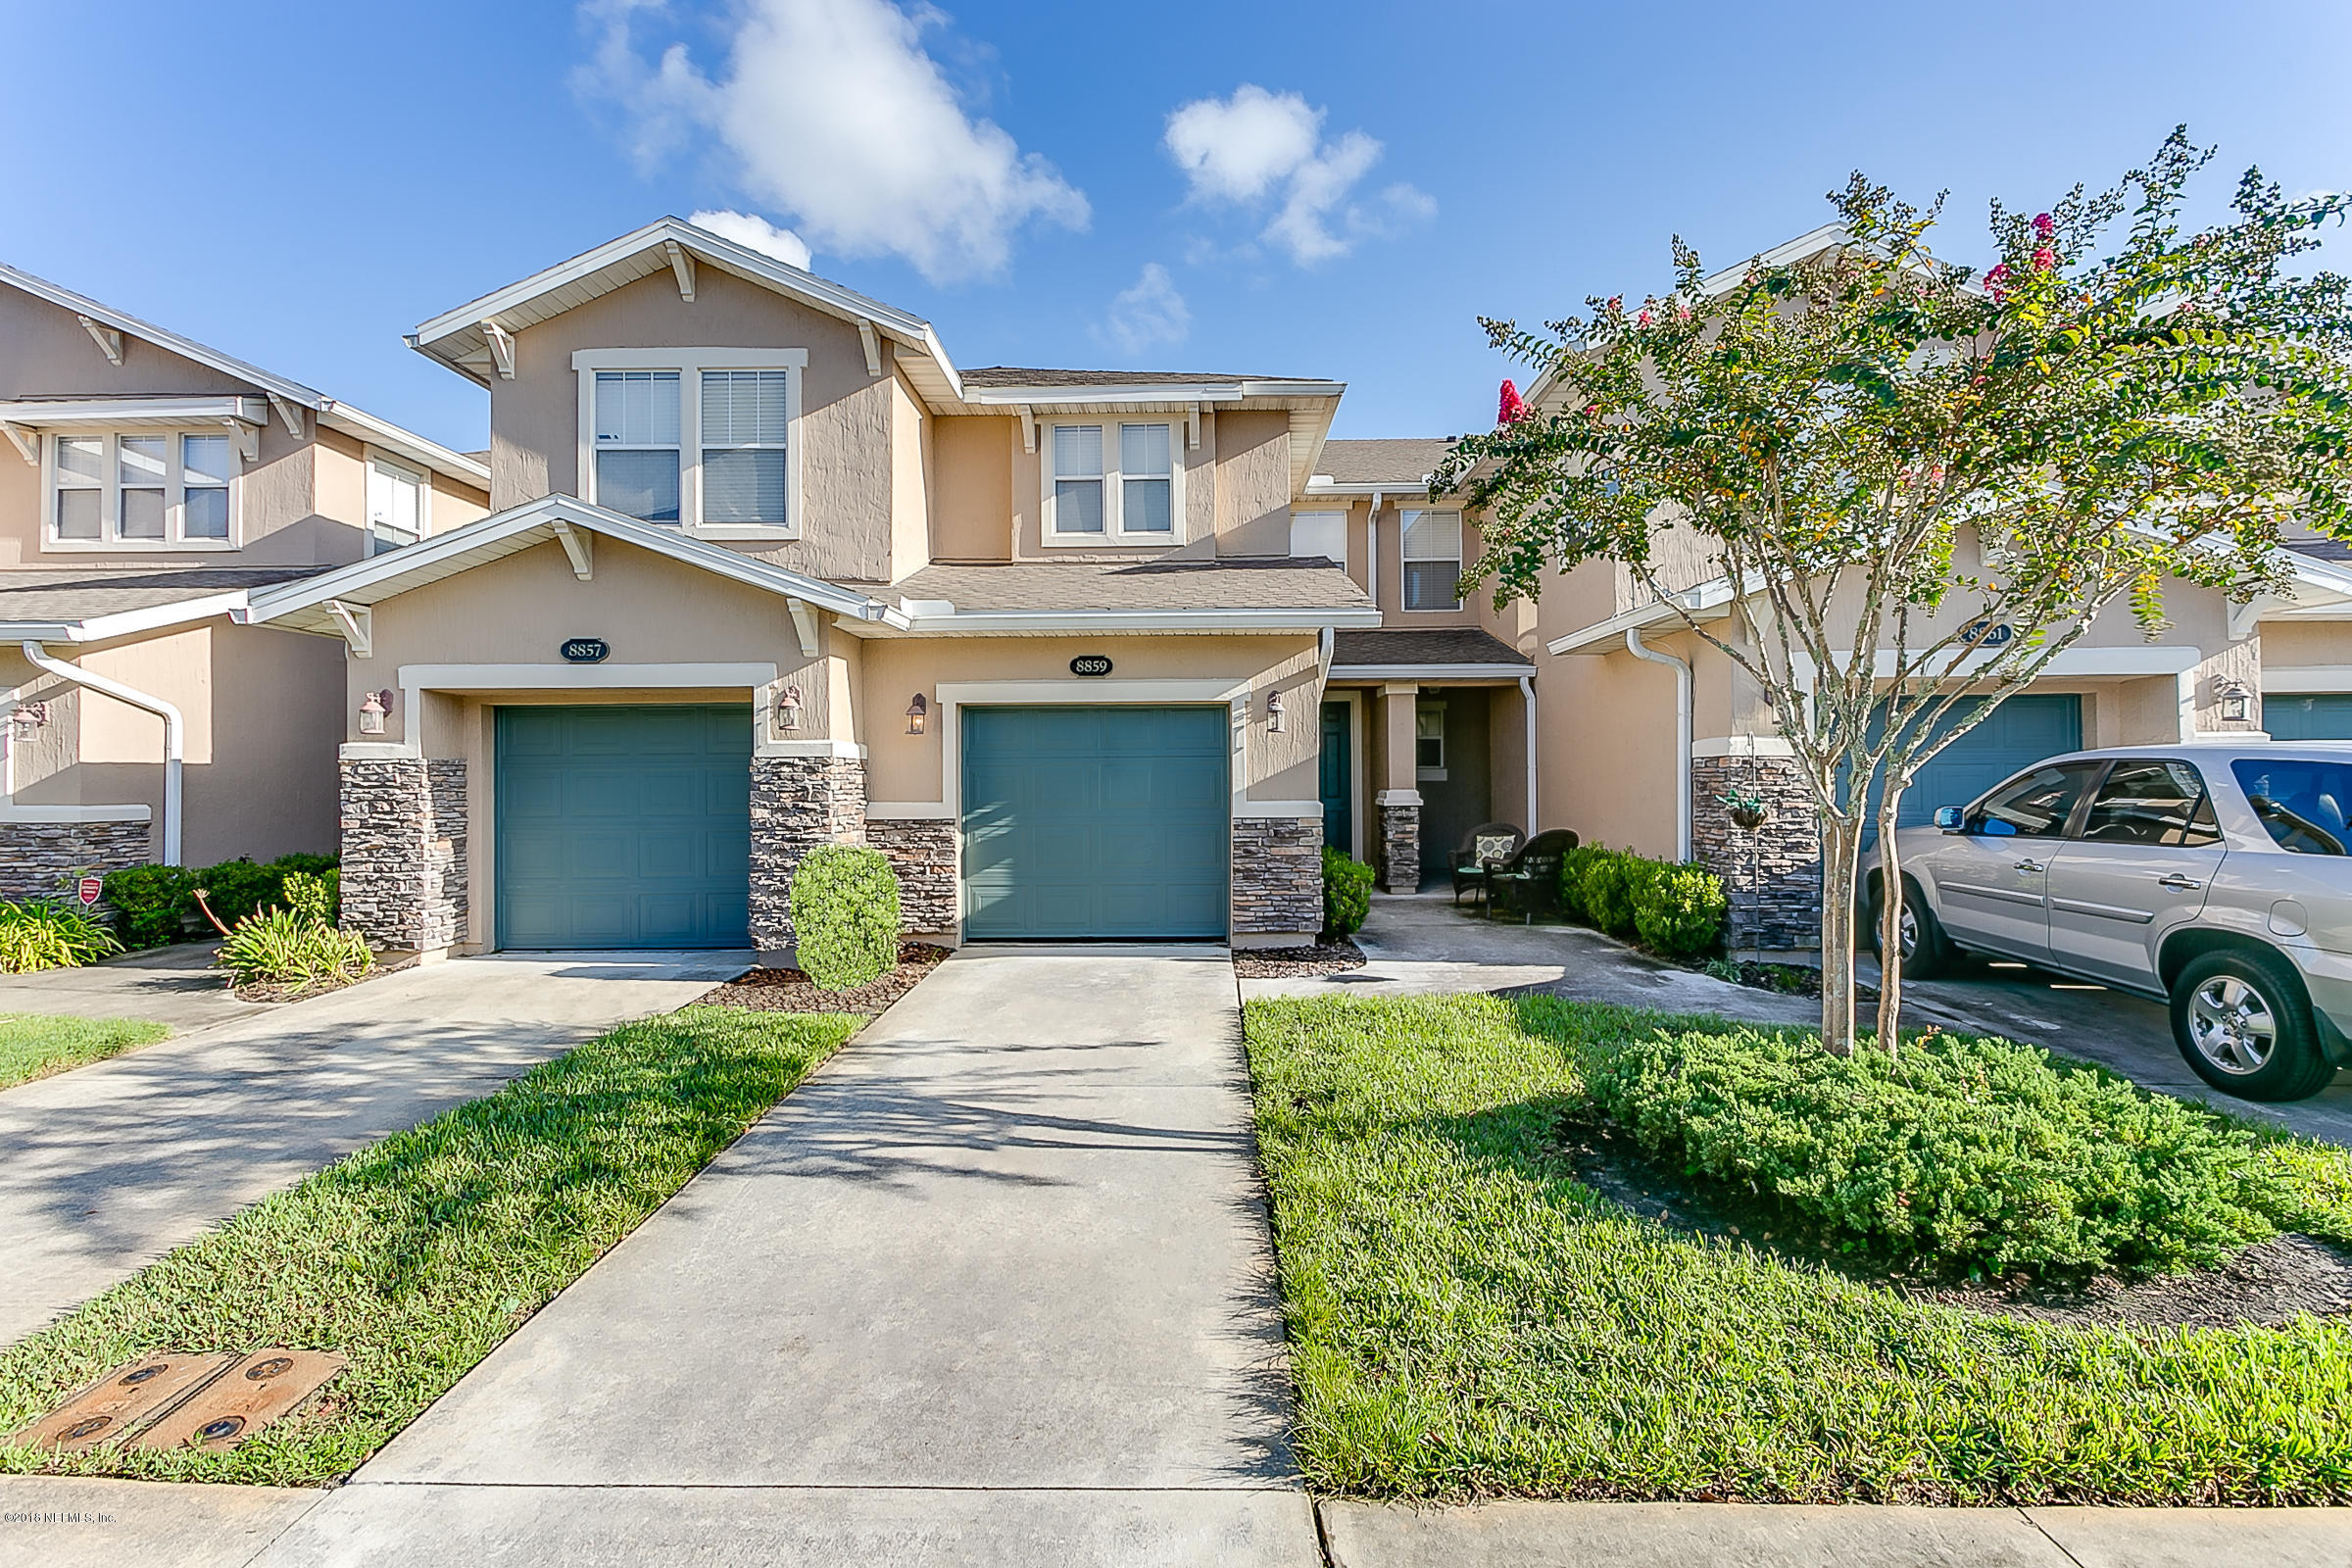 8859 SHELL ISLAND, JACKSONVILLE, FLORIDA 32216, 2 Bedrooms Bedrooms, ,2 BathroomsBathrooms,Residential - townhome,For sale,SHELL ISLAND,950317